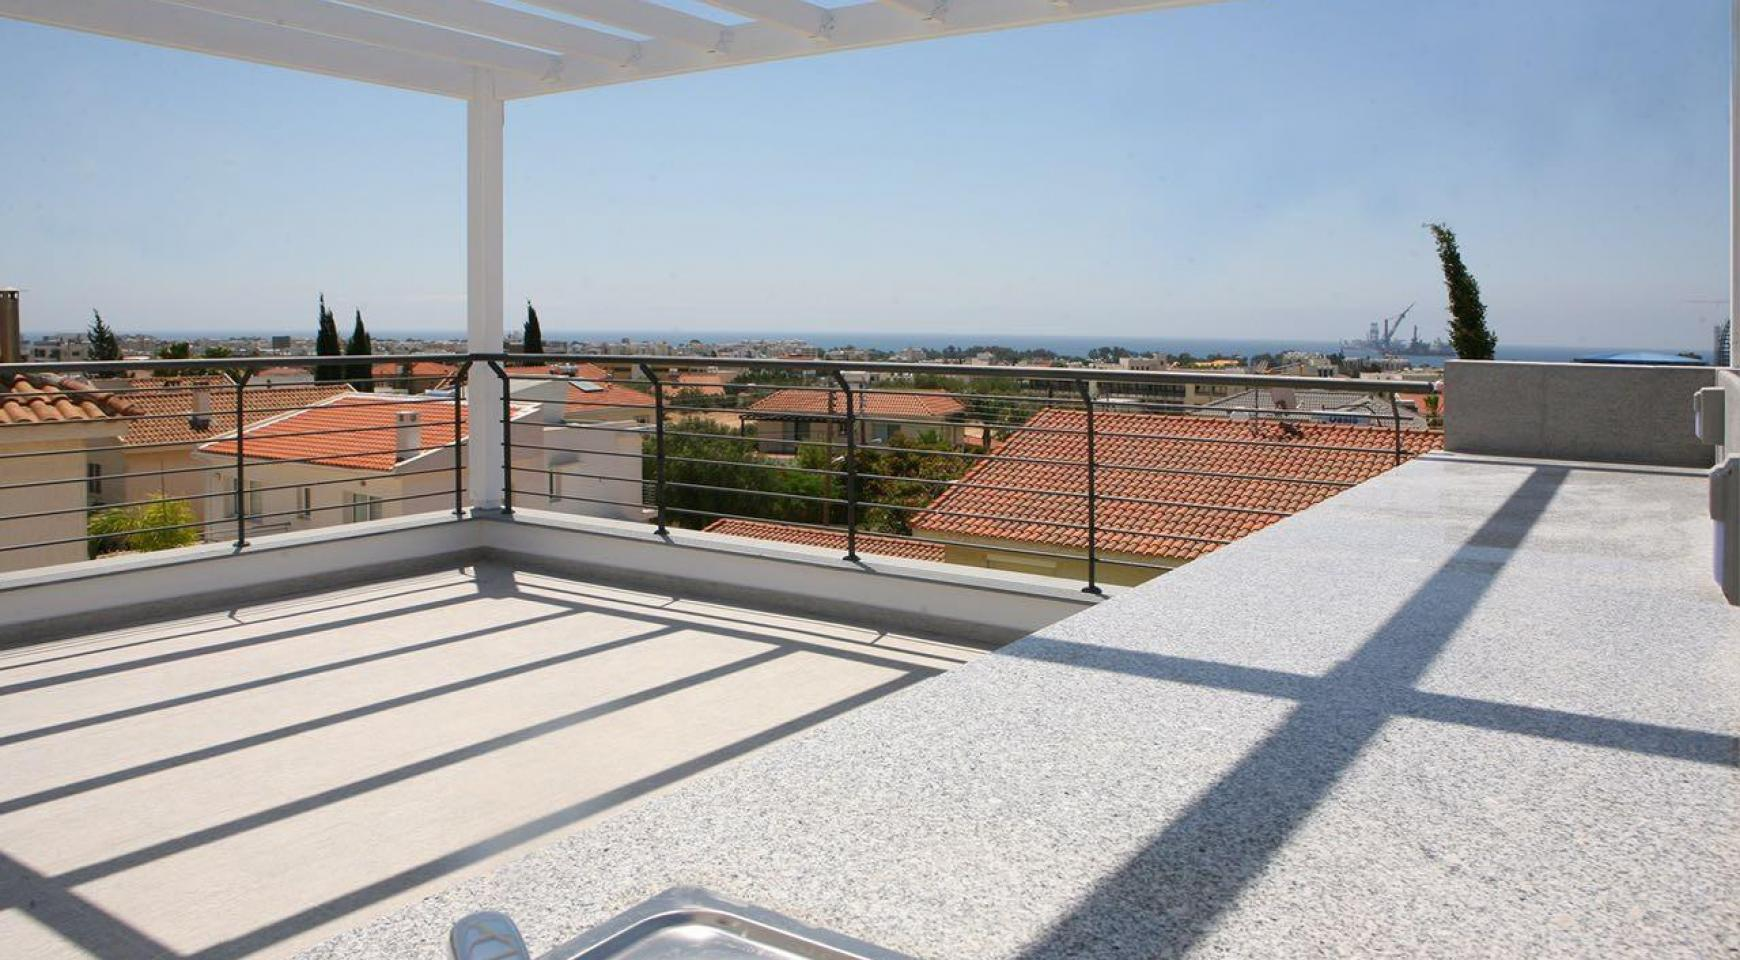 New Contemporary 3 Bedroom House in Central Location - 9